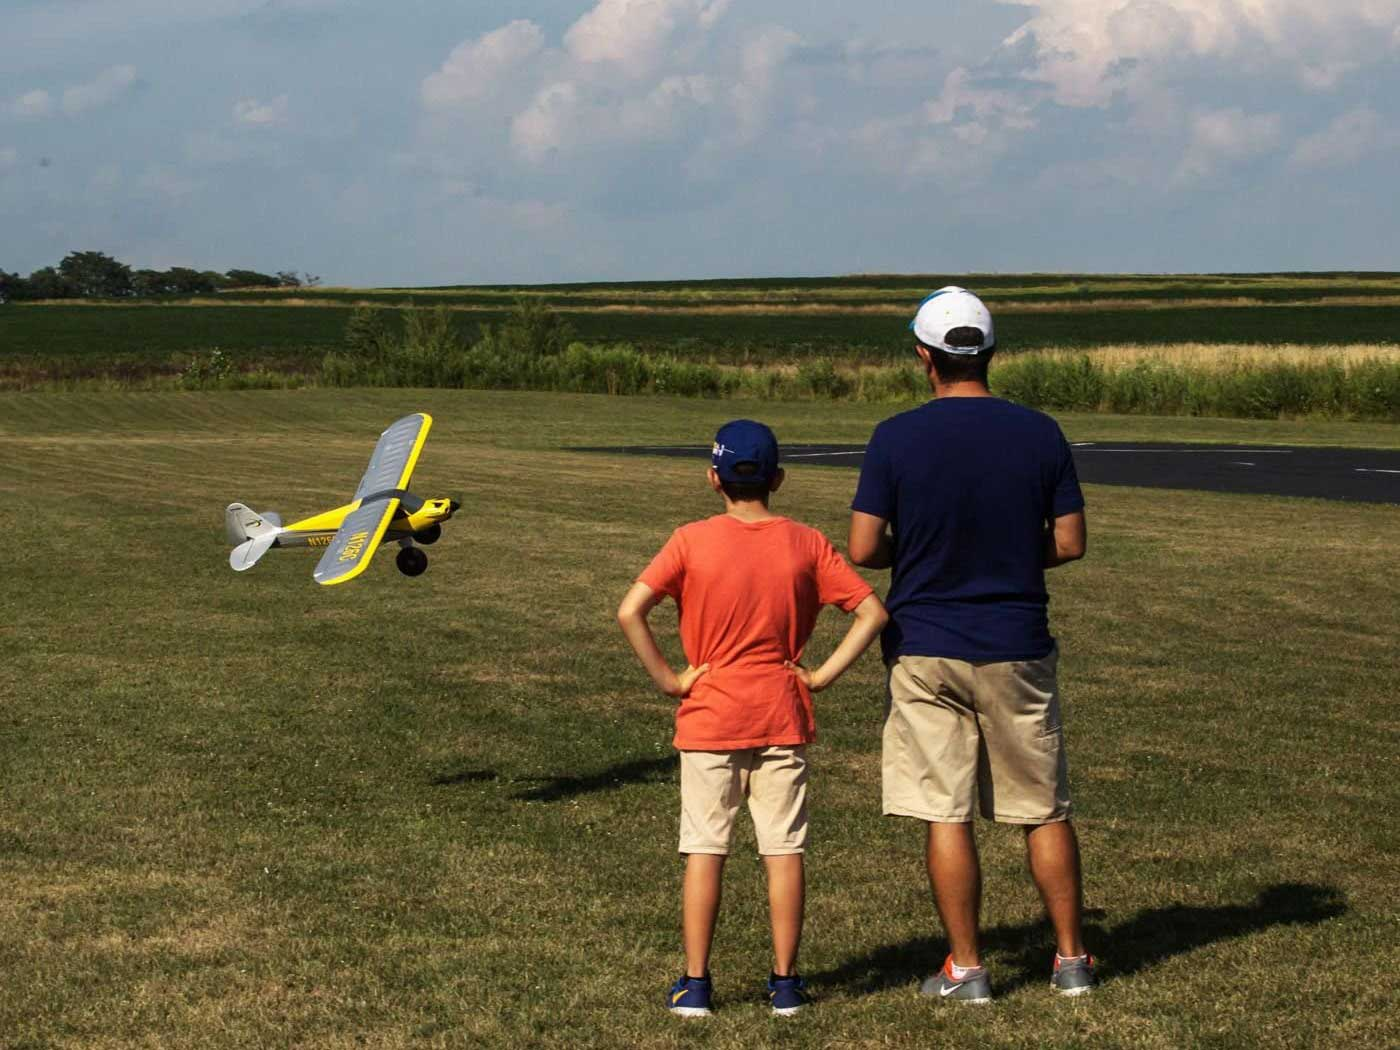 Father and son fly remote-controlled airplane